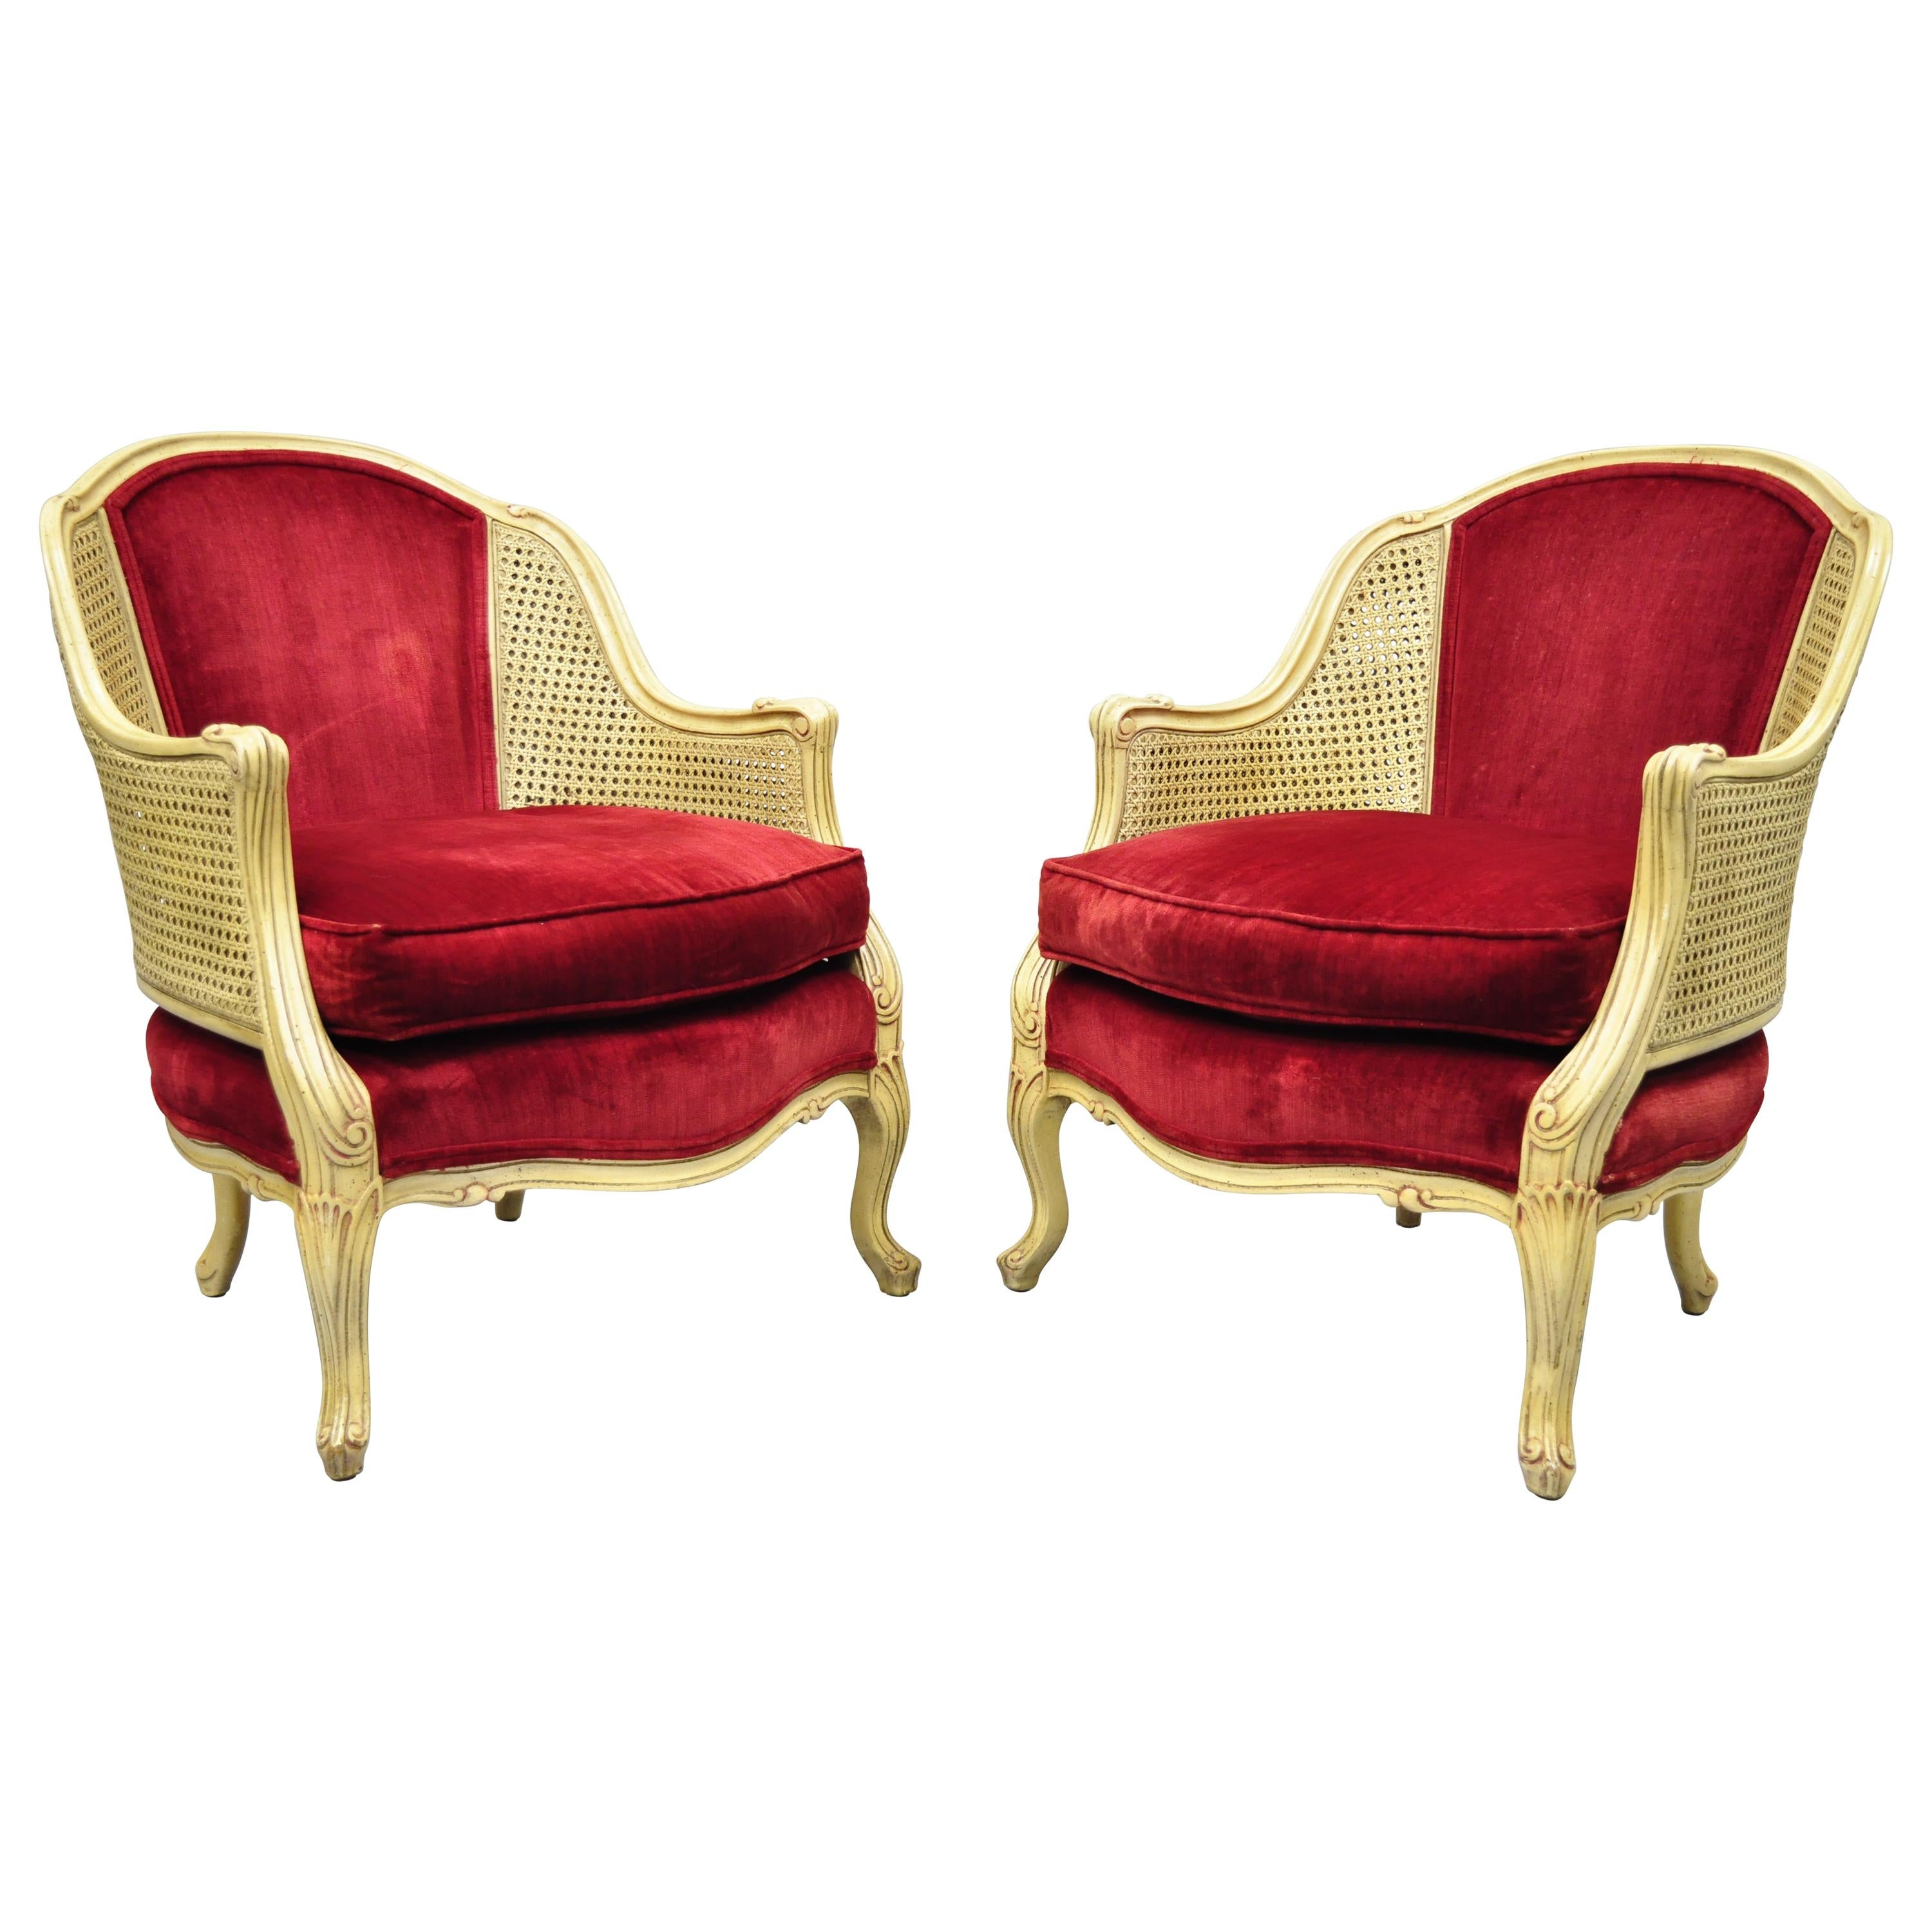 French Provincial Hollywood Regency Red Cane Bergere Club Arm Chairs, a Pair